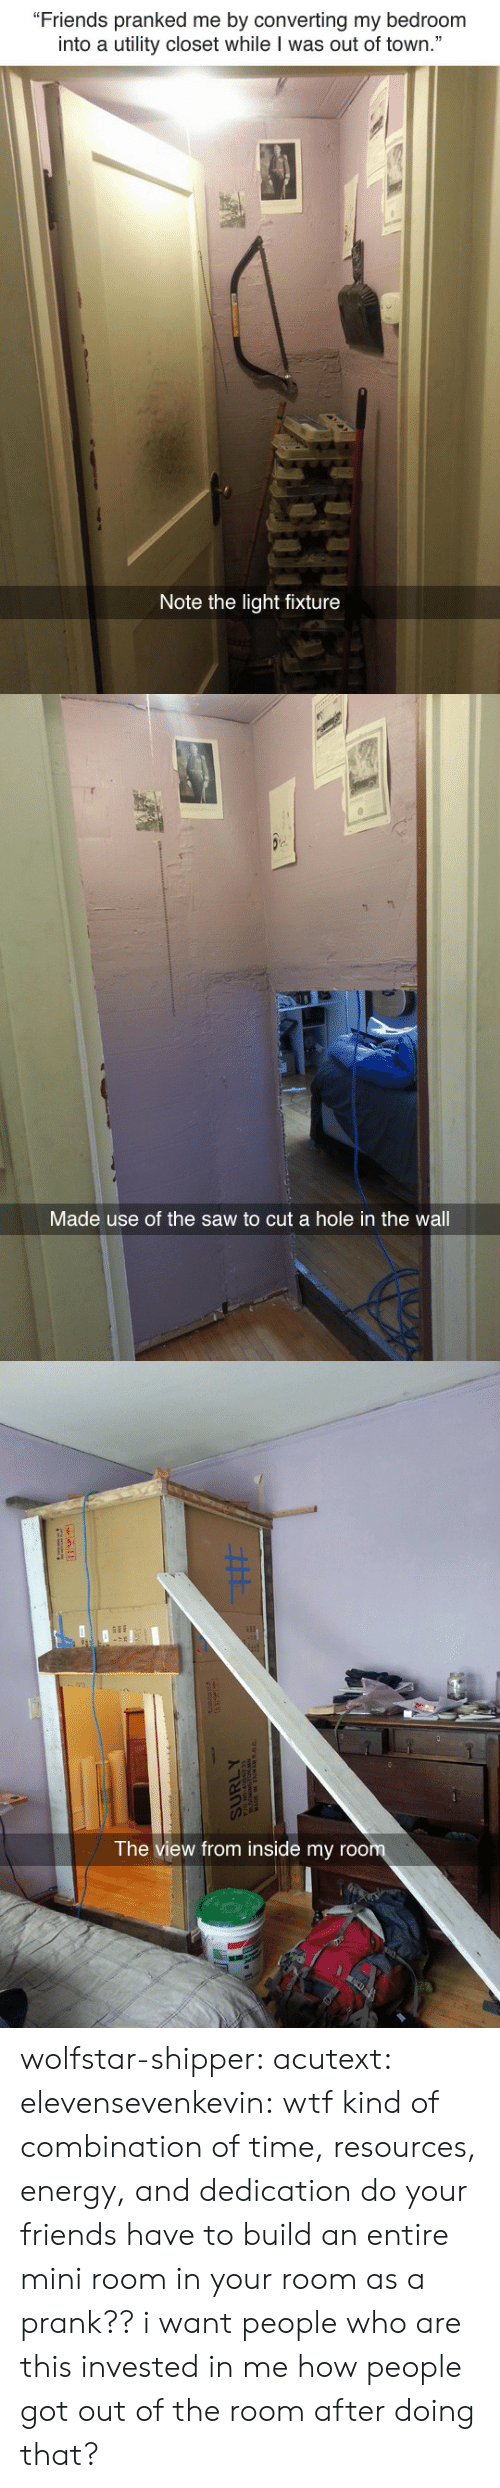 """The View: """"Friends pranked me by converting my bedroom  into a utility closet while I was out of town.""""  Note the light fixture   Made use of the saw to cut a hole in the wall   The view from inside my roo wolfstar-shipper:  acutext:  elevensevenkevin:  wtf kind of combination of time, resources, energy, and dedication do your friends have to build an entire mini room in your room as a prank??  i want people who are this invested in me  how people got out of the room after doing that?"""